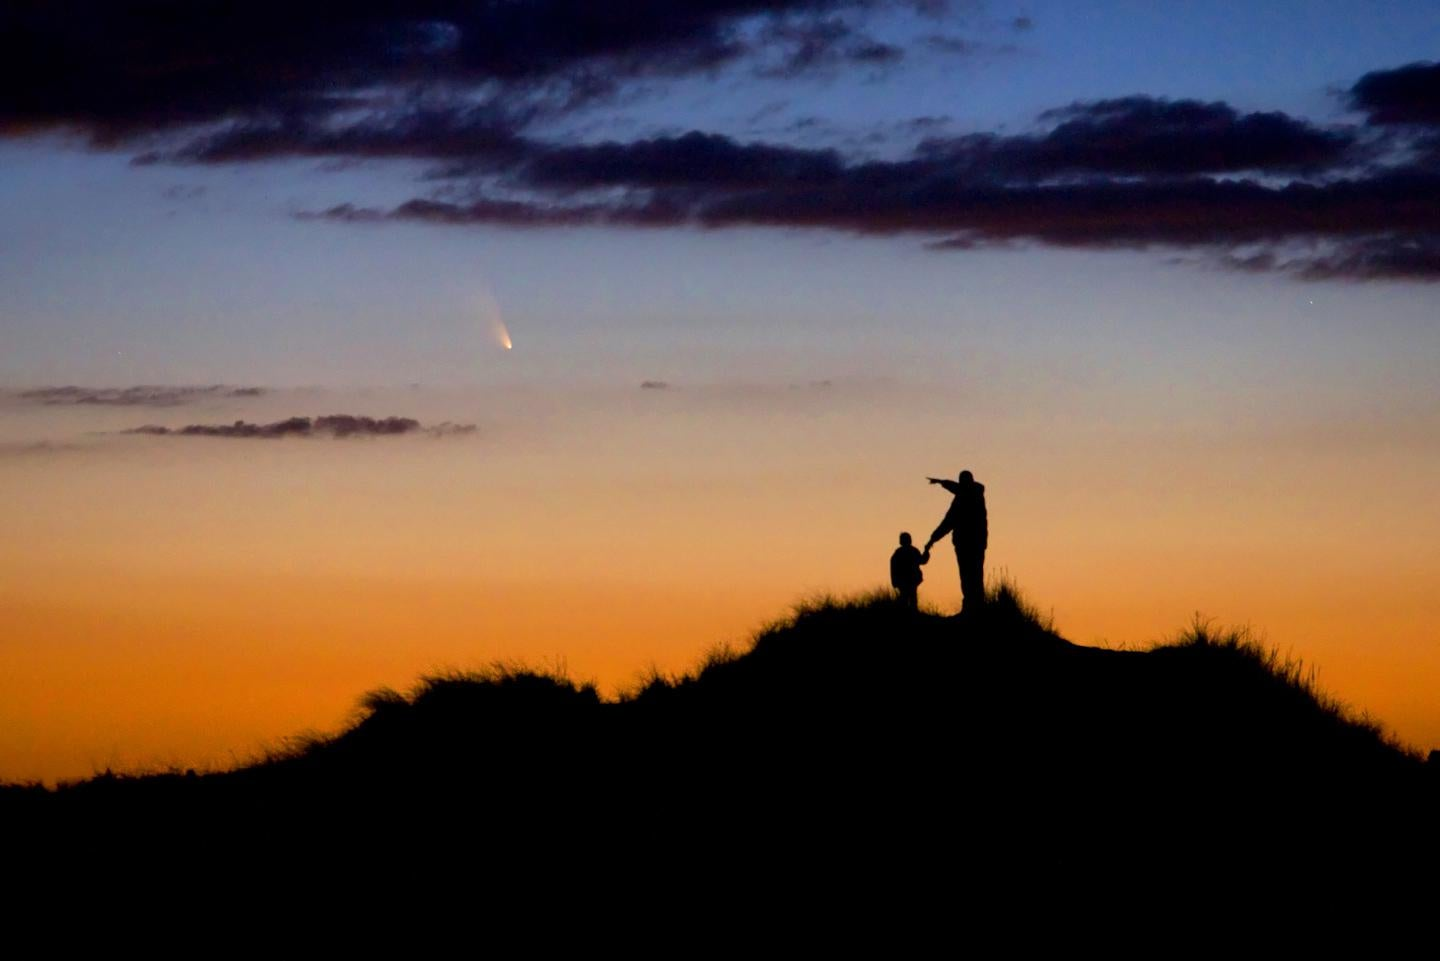 Father and son observing Comet PanSTARRS